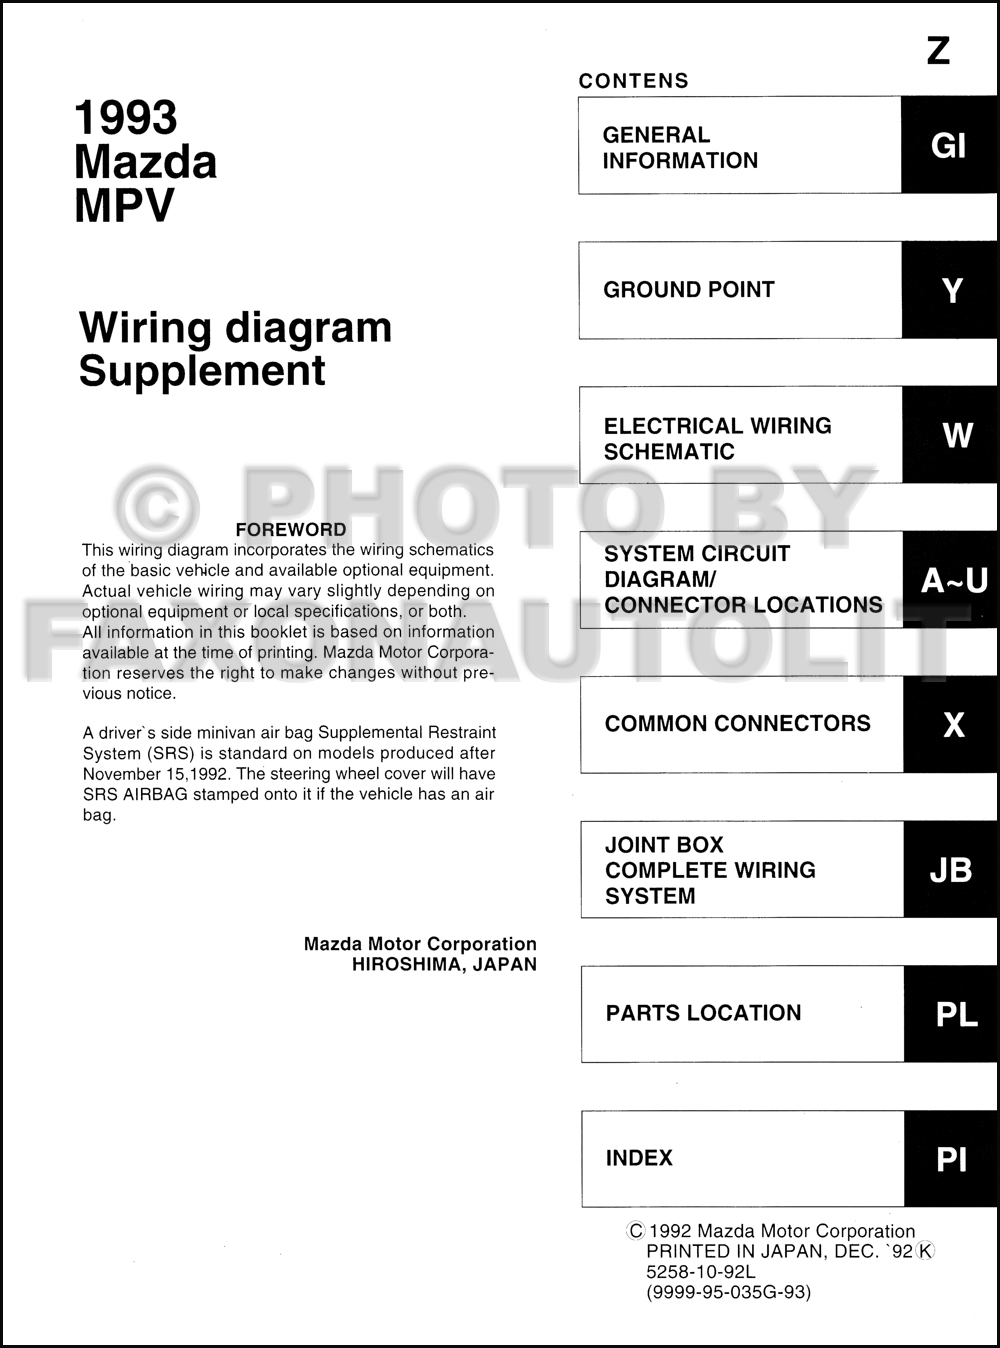 Mazda 2 Airbag Wiring Diagram : Mazda mpv wiring diagram manual original for vans